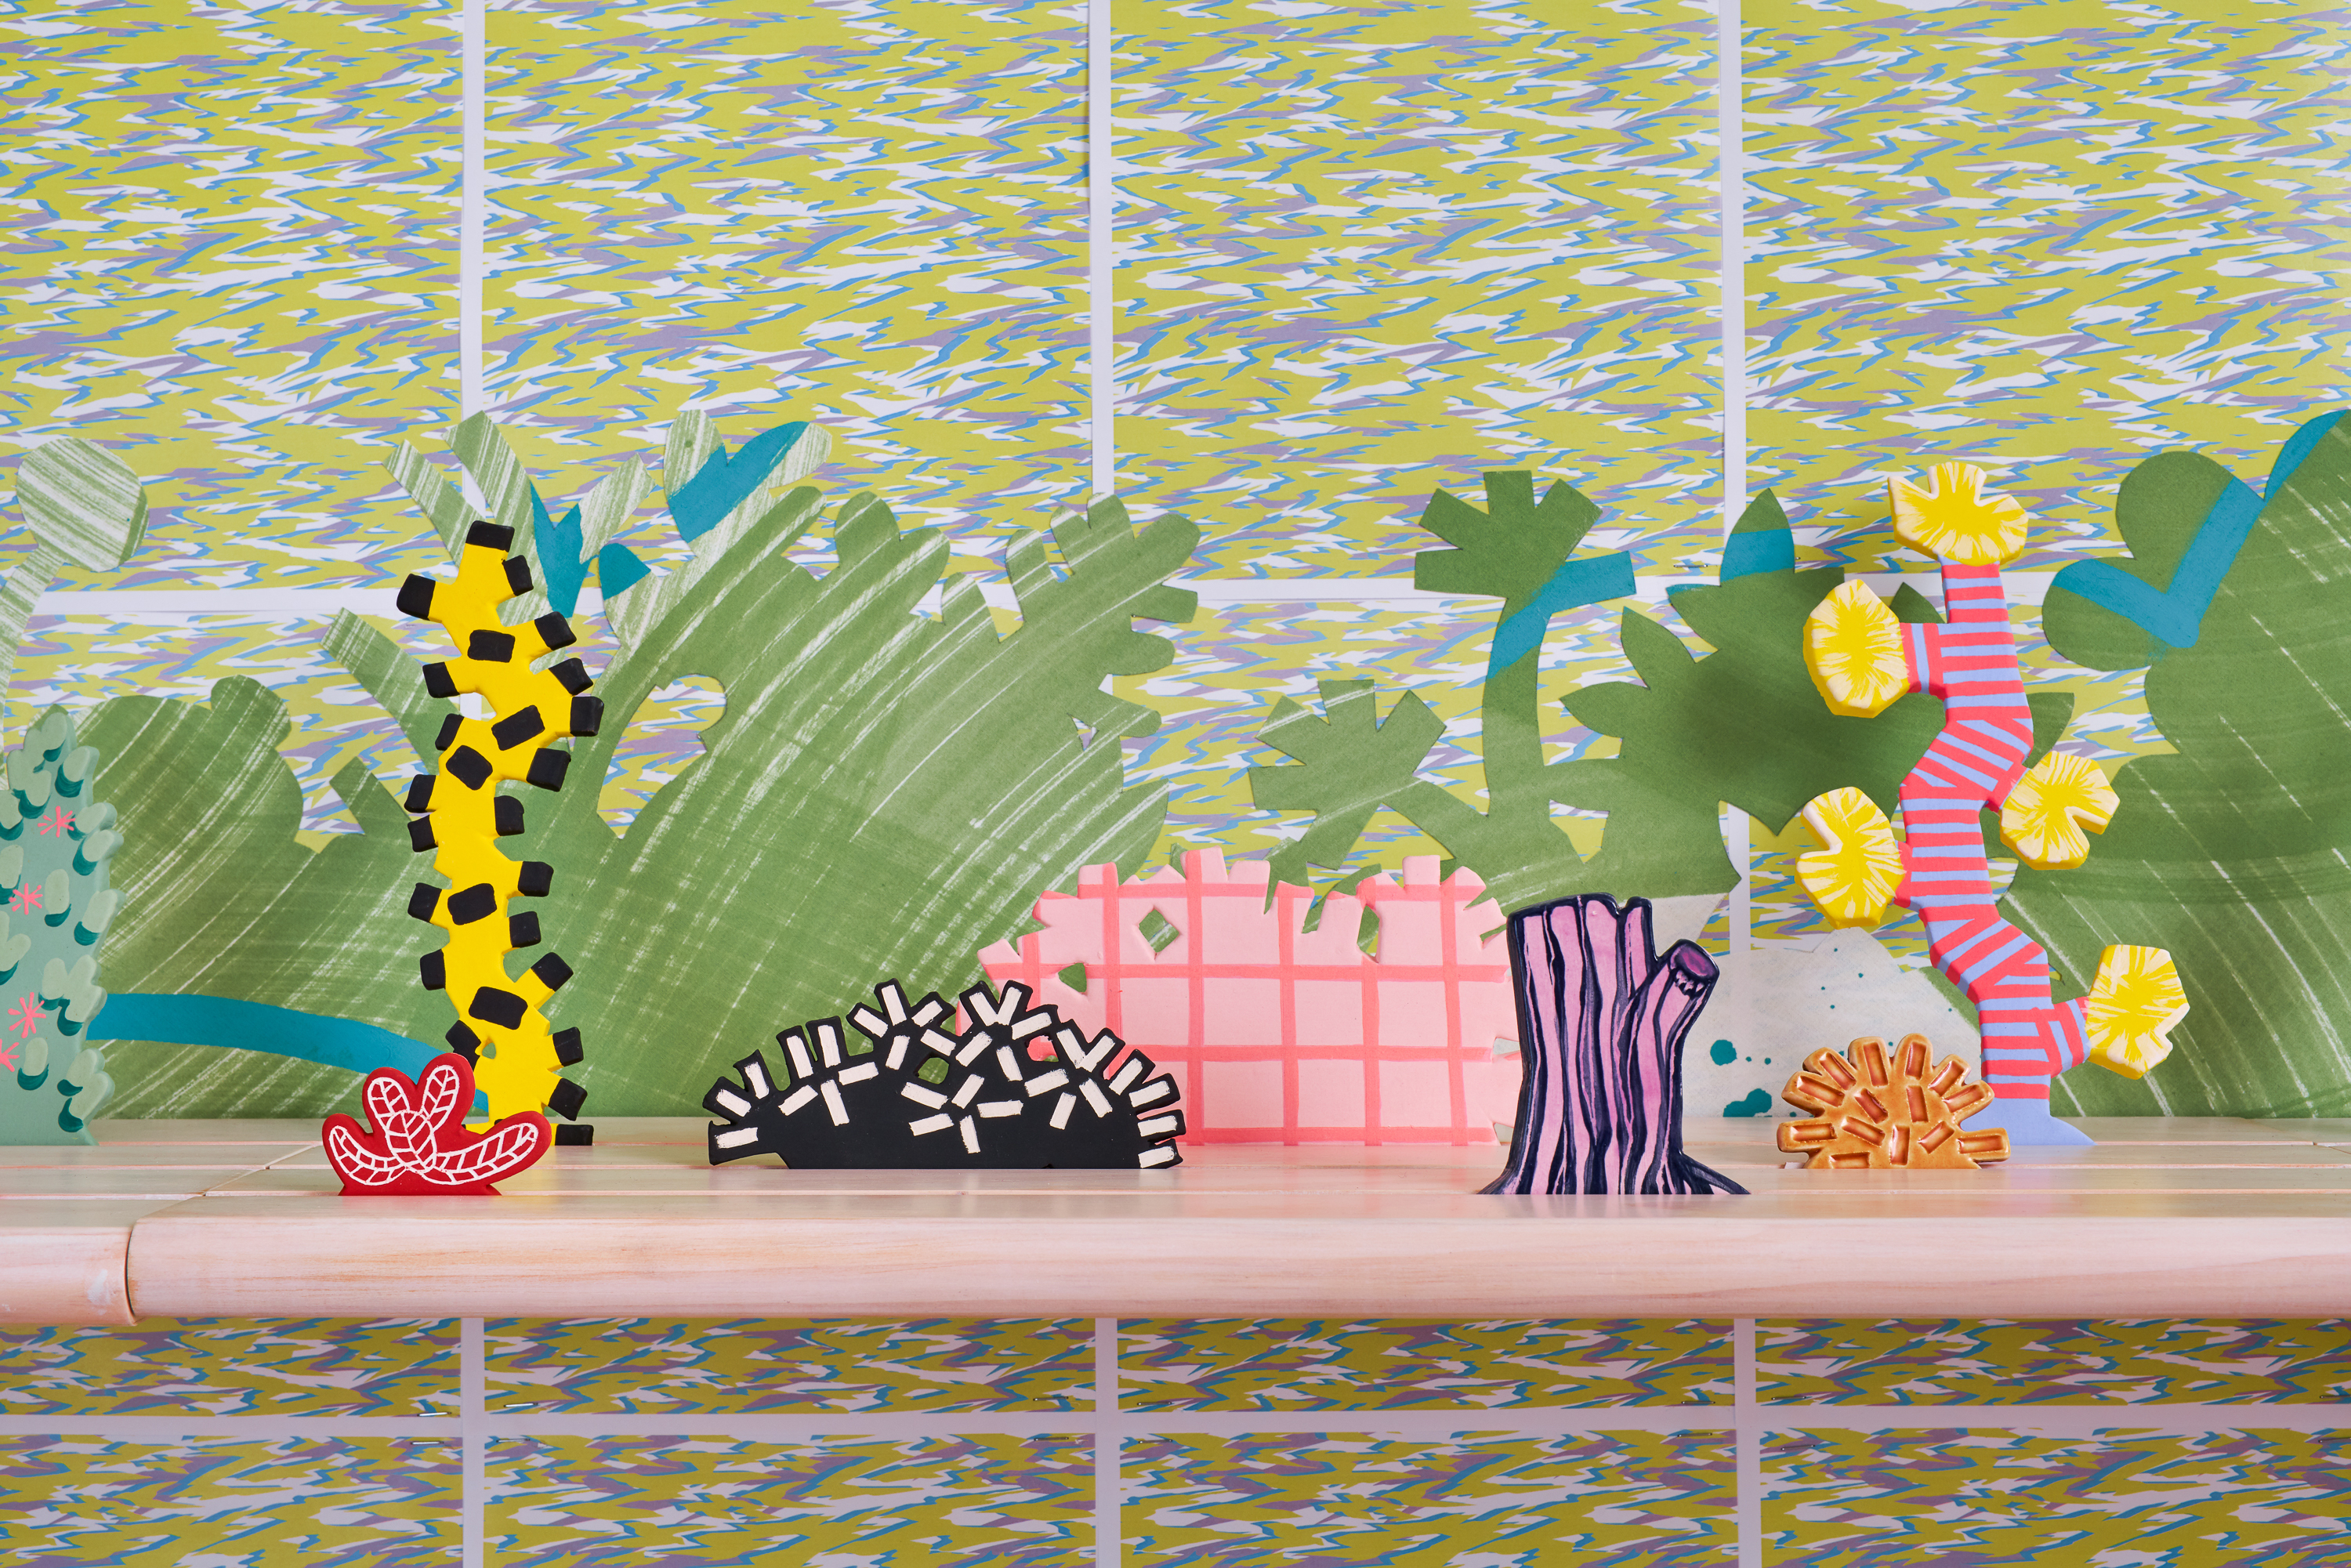 Horizon Allsorts, 2018 (detail); Installation for MILIEU: Erin Harmon and Devon Tsuno, LAUNCH, Los Angeles; Floating wood shelves, painted muslin, ceramic, underglaze and glaze; 6 shelves, each 22.86 x 60.96cm; documentation of this installation includes wall paper by Devon Tsuno